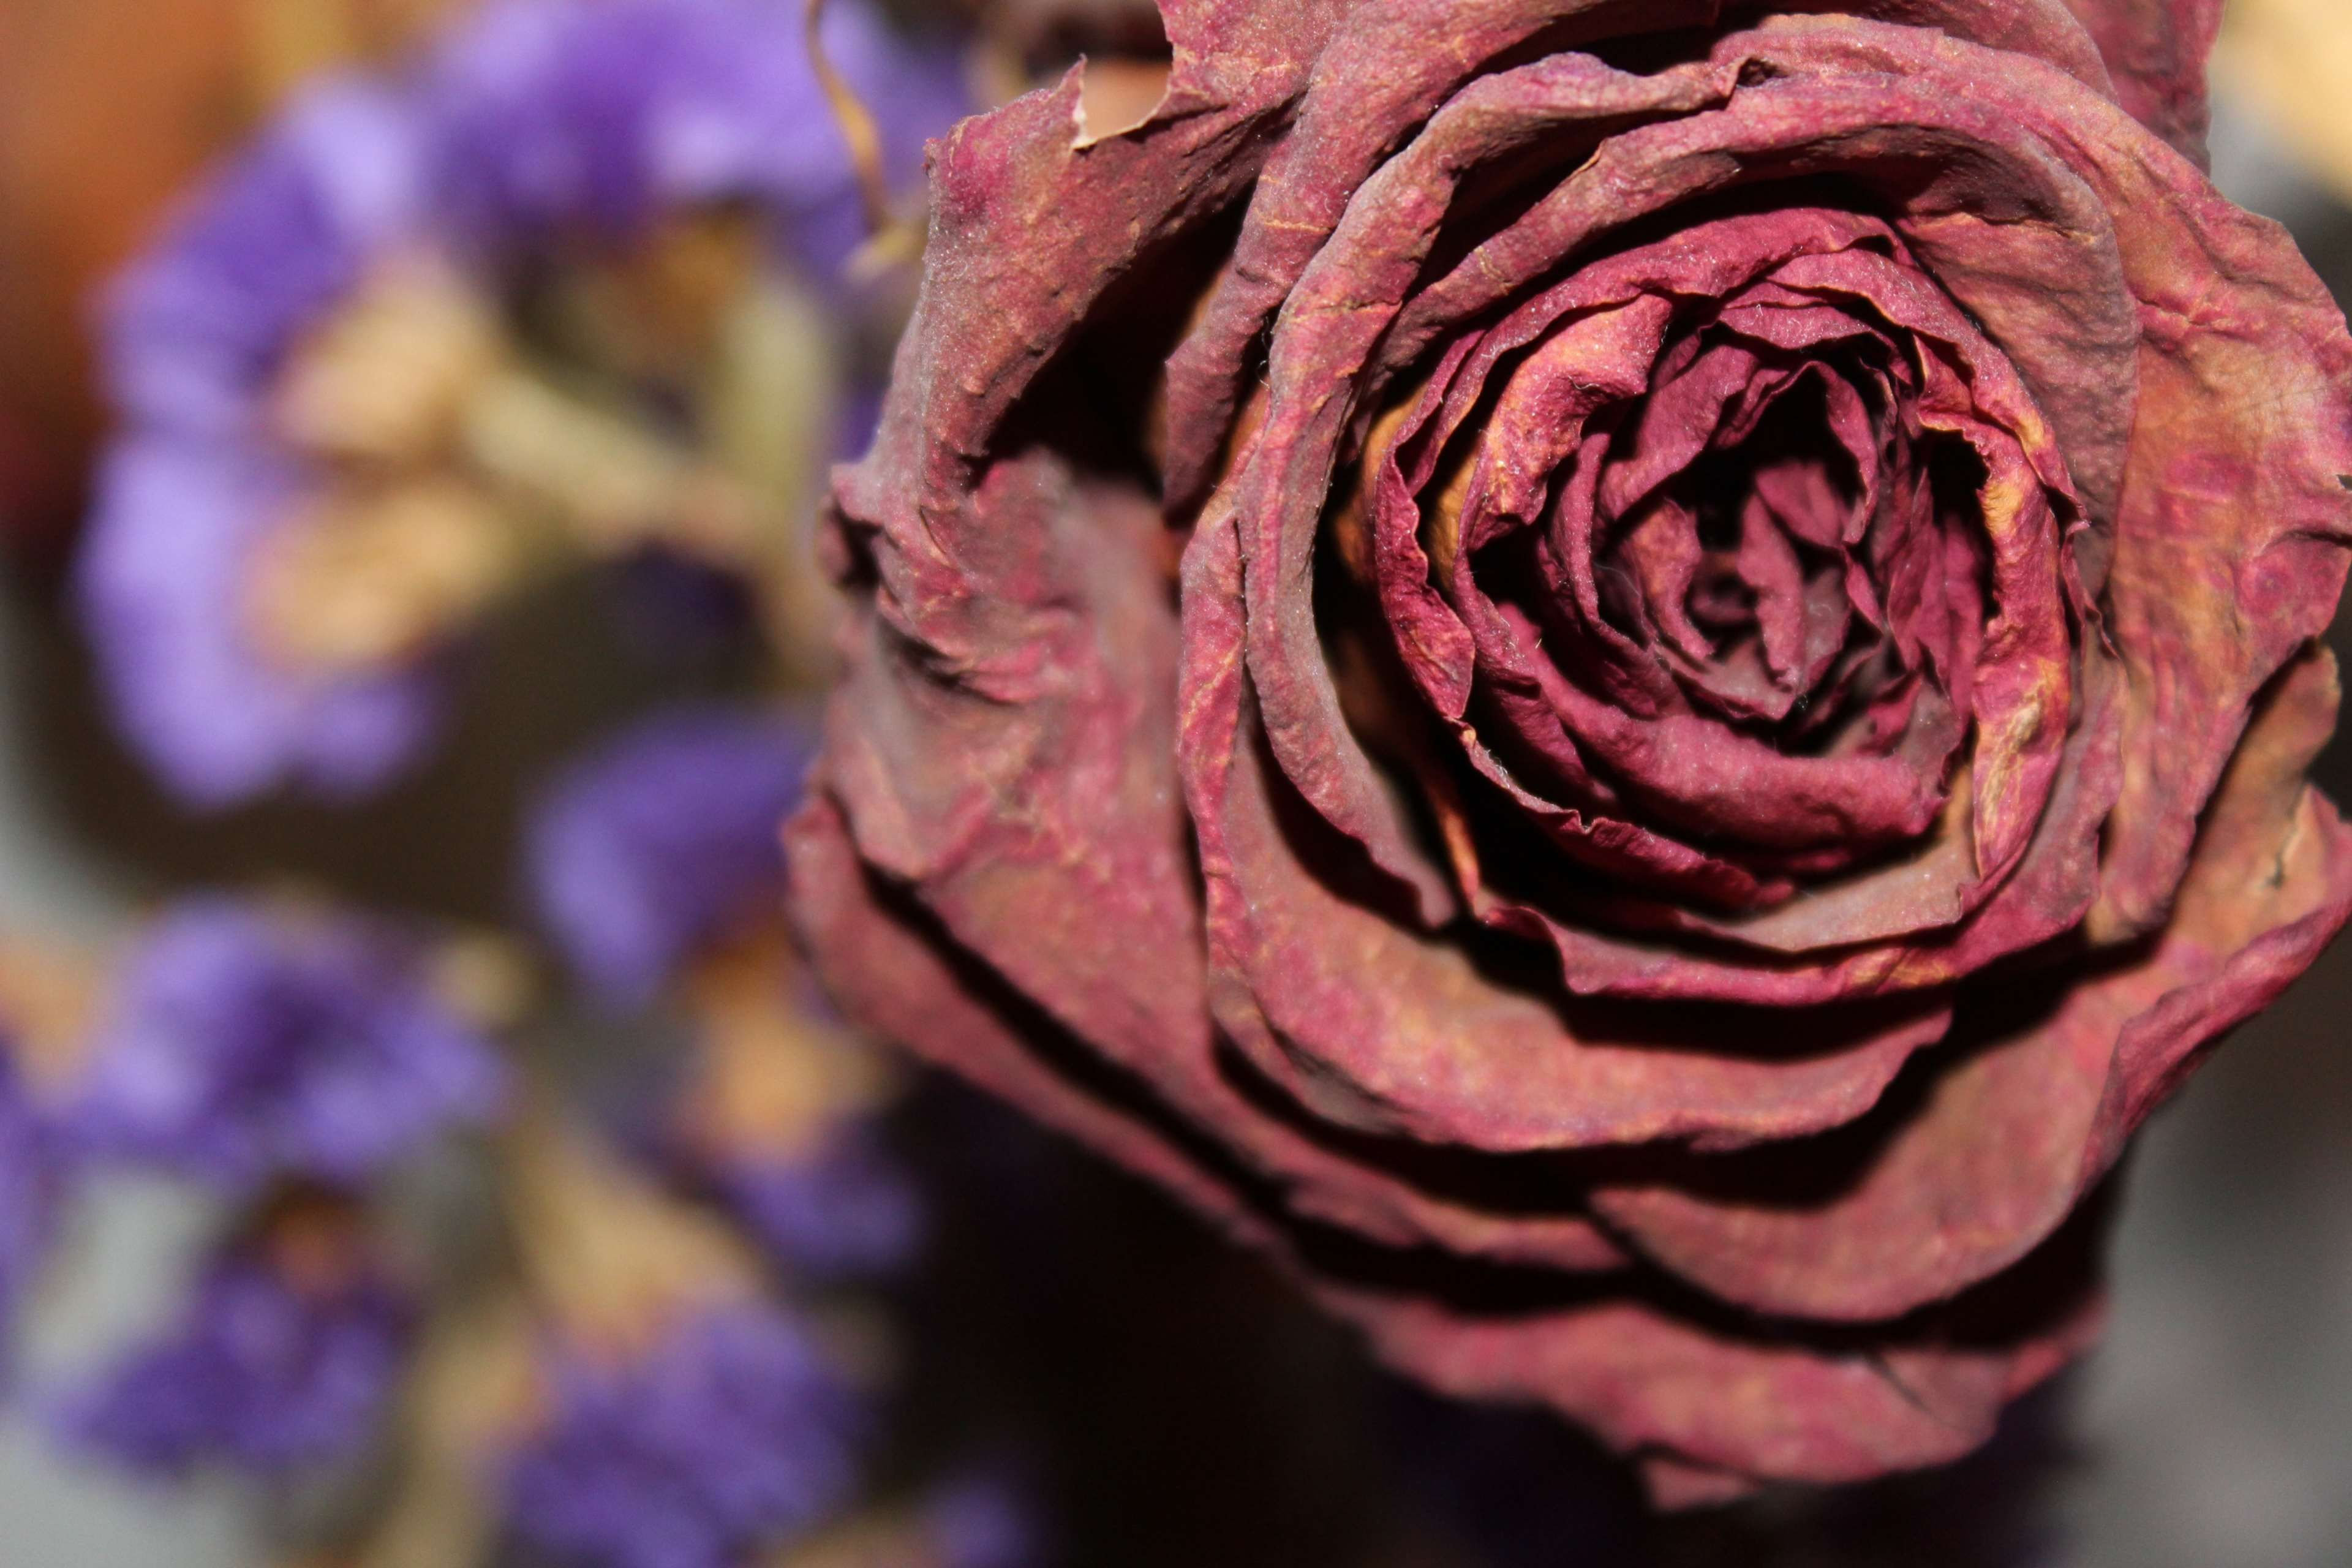 Dead Dried Dried Rose Dry Floral Flower Fragile Leaves Love Old Plant Red Rose Valentine Rose Flowers Dried Floral